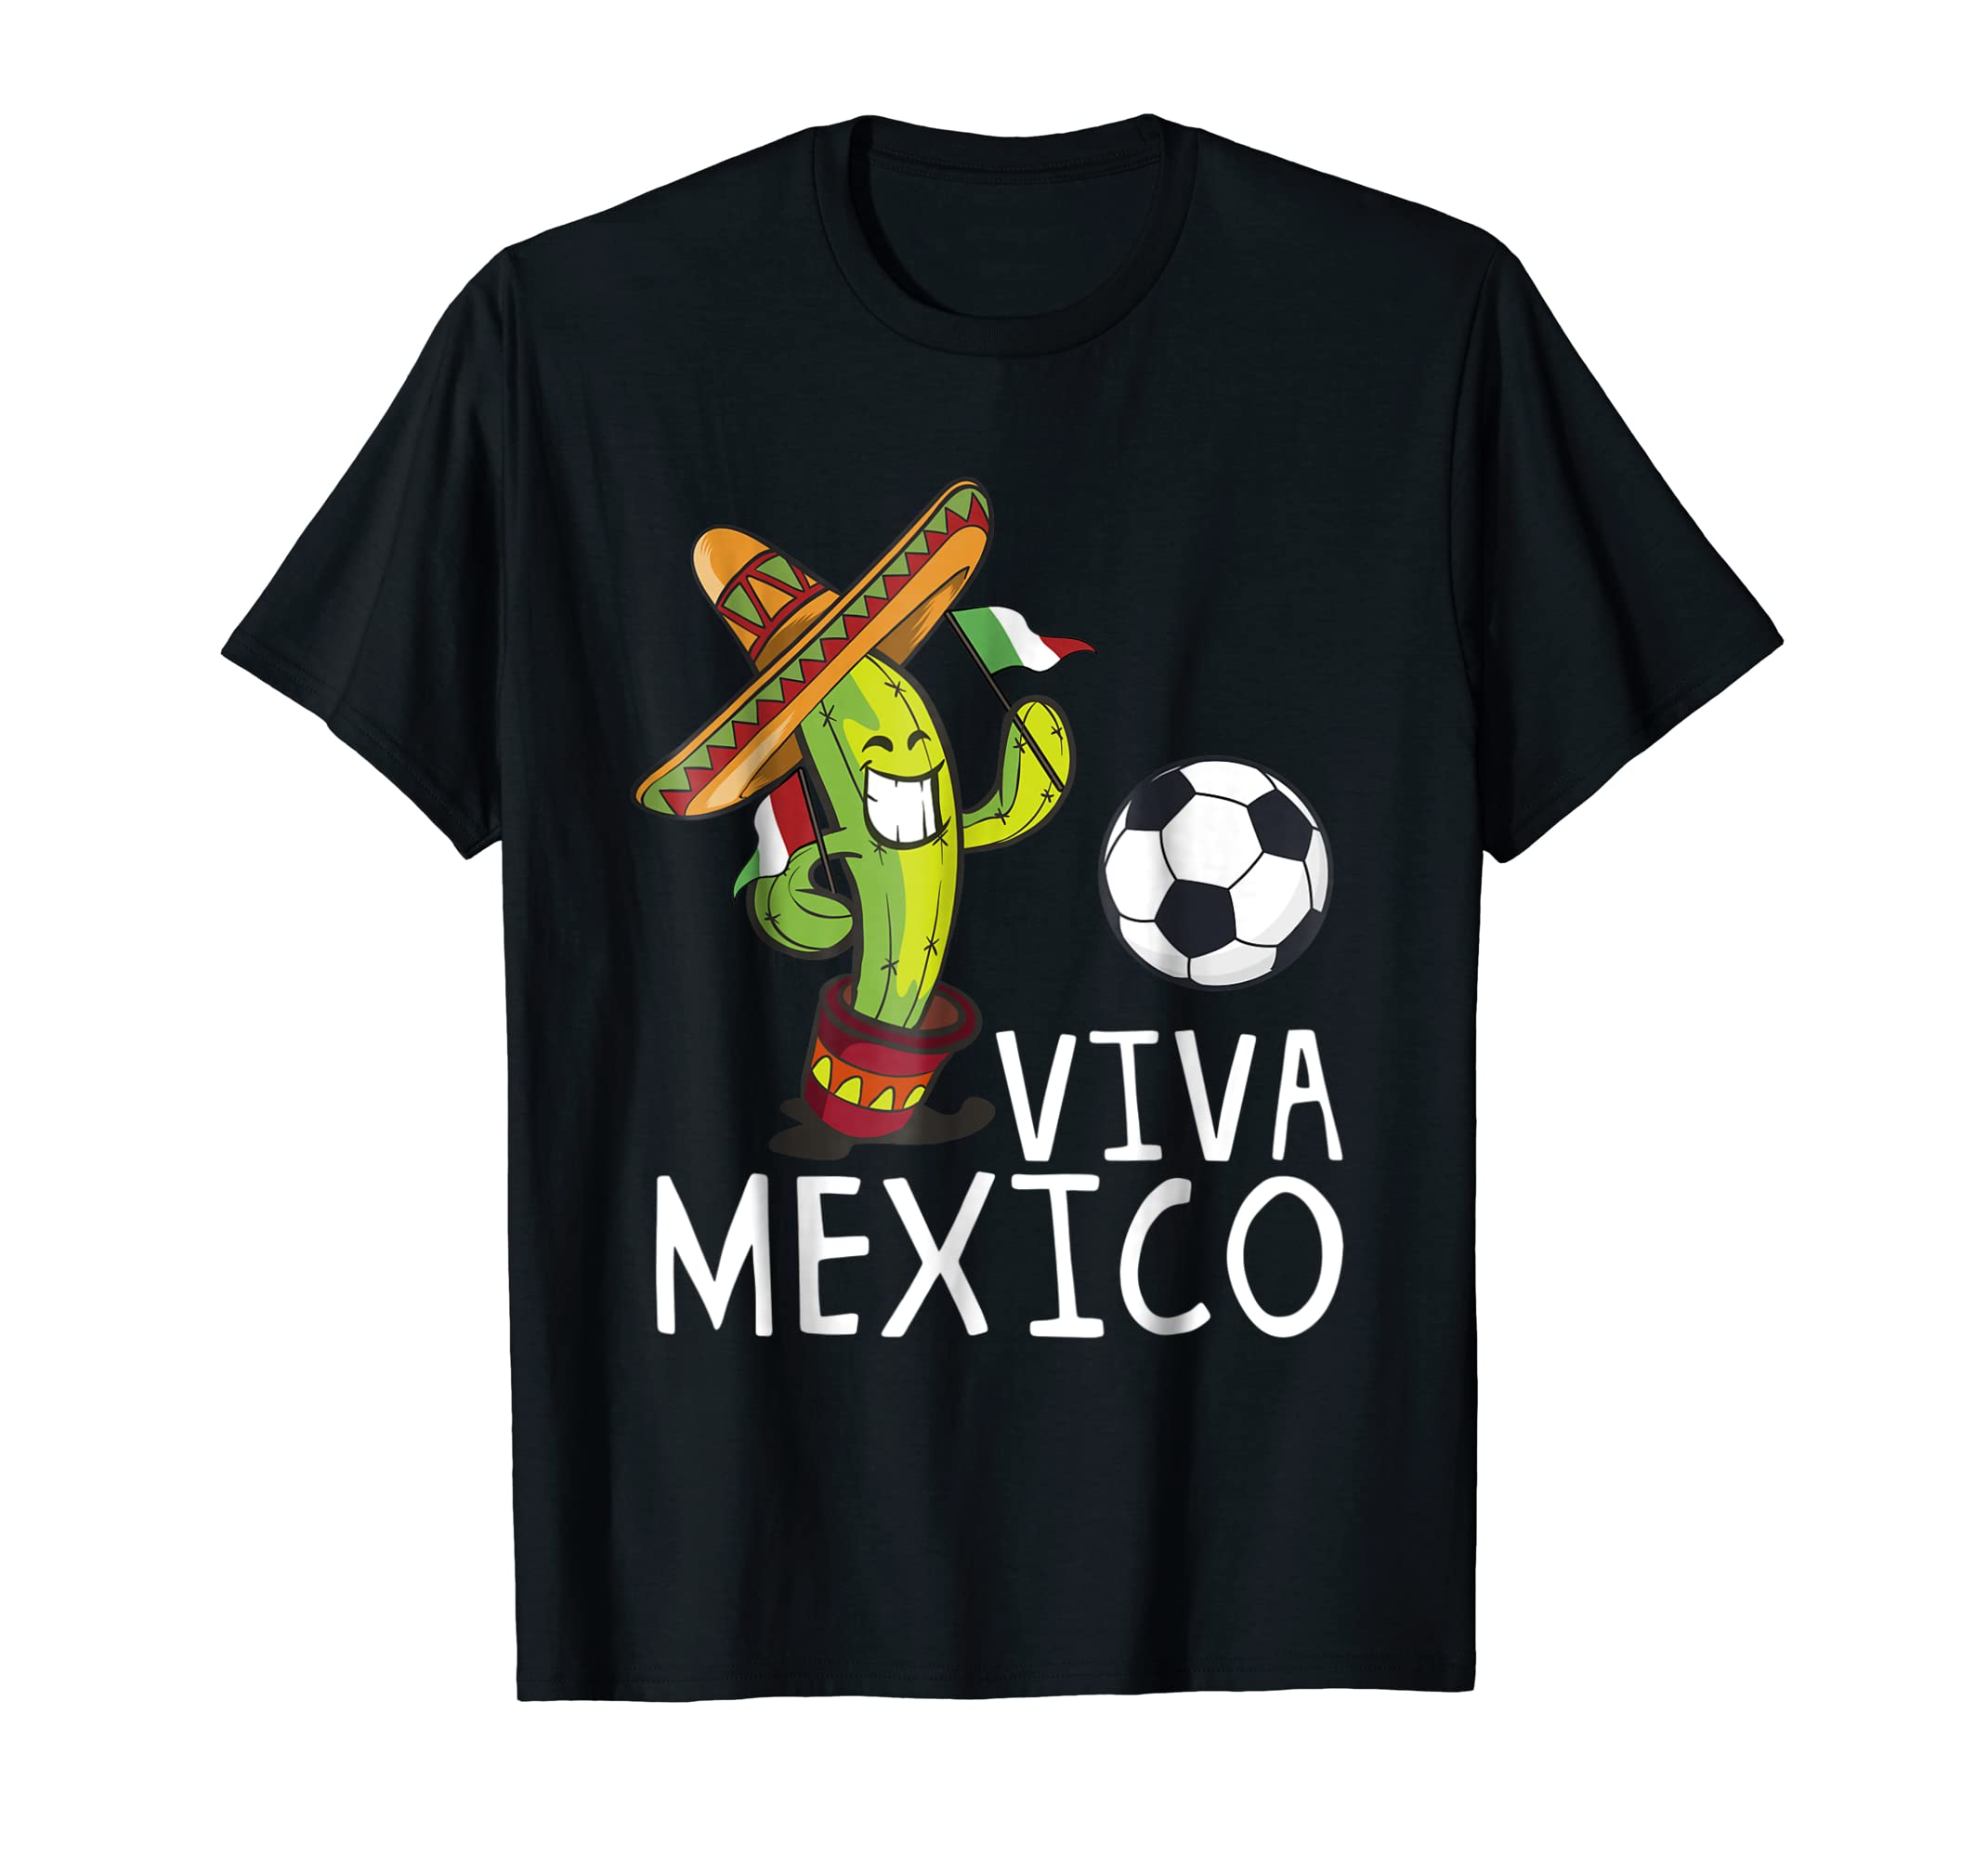 Amazon.com: Viva Mexico con cactus y balon-Mundial de Futbol camiseta: Clothing